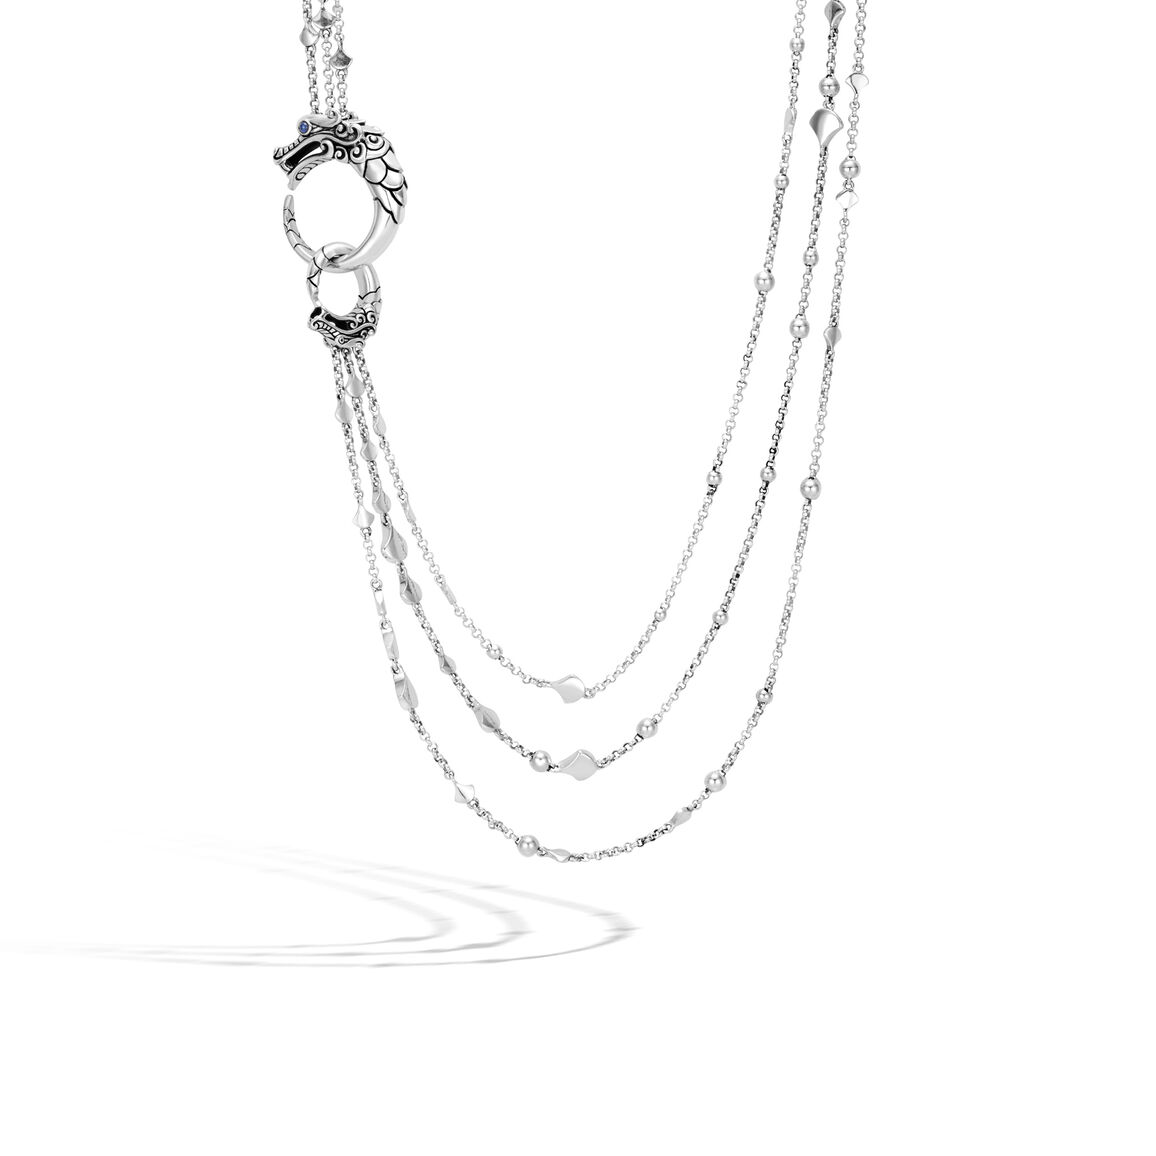 Legends Naga Multi Row Necklace in Silver